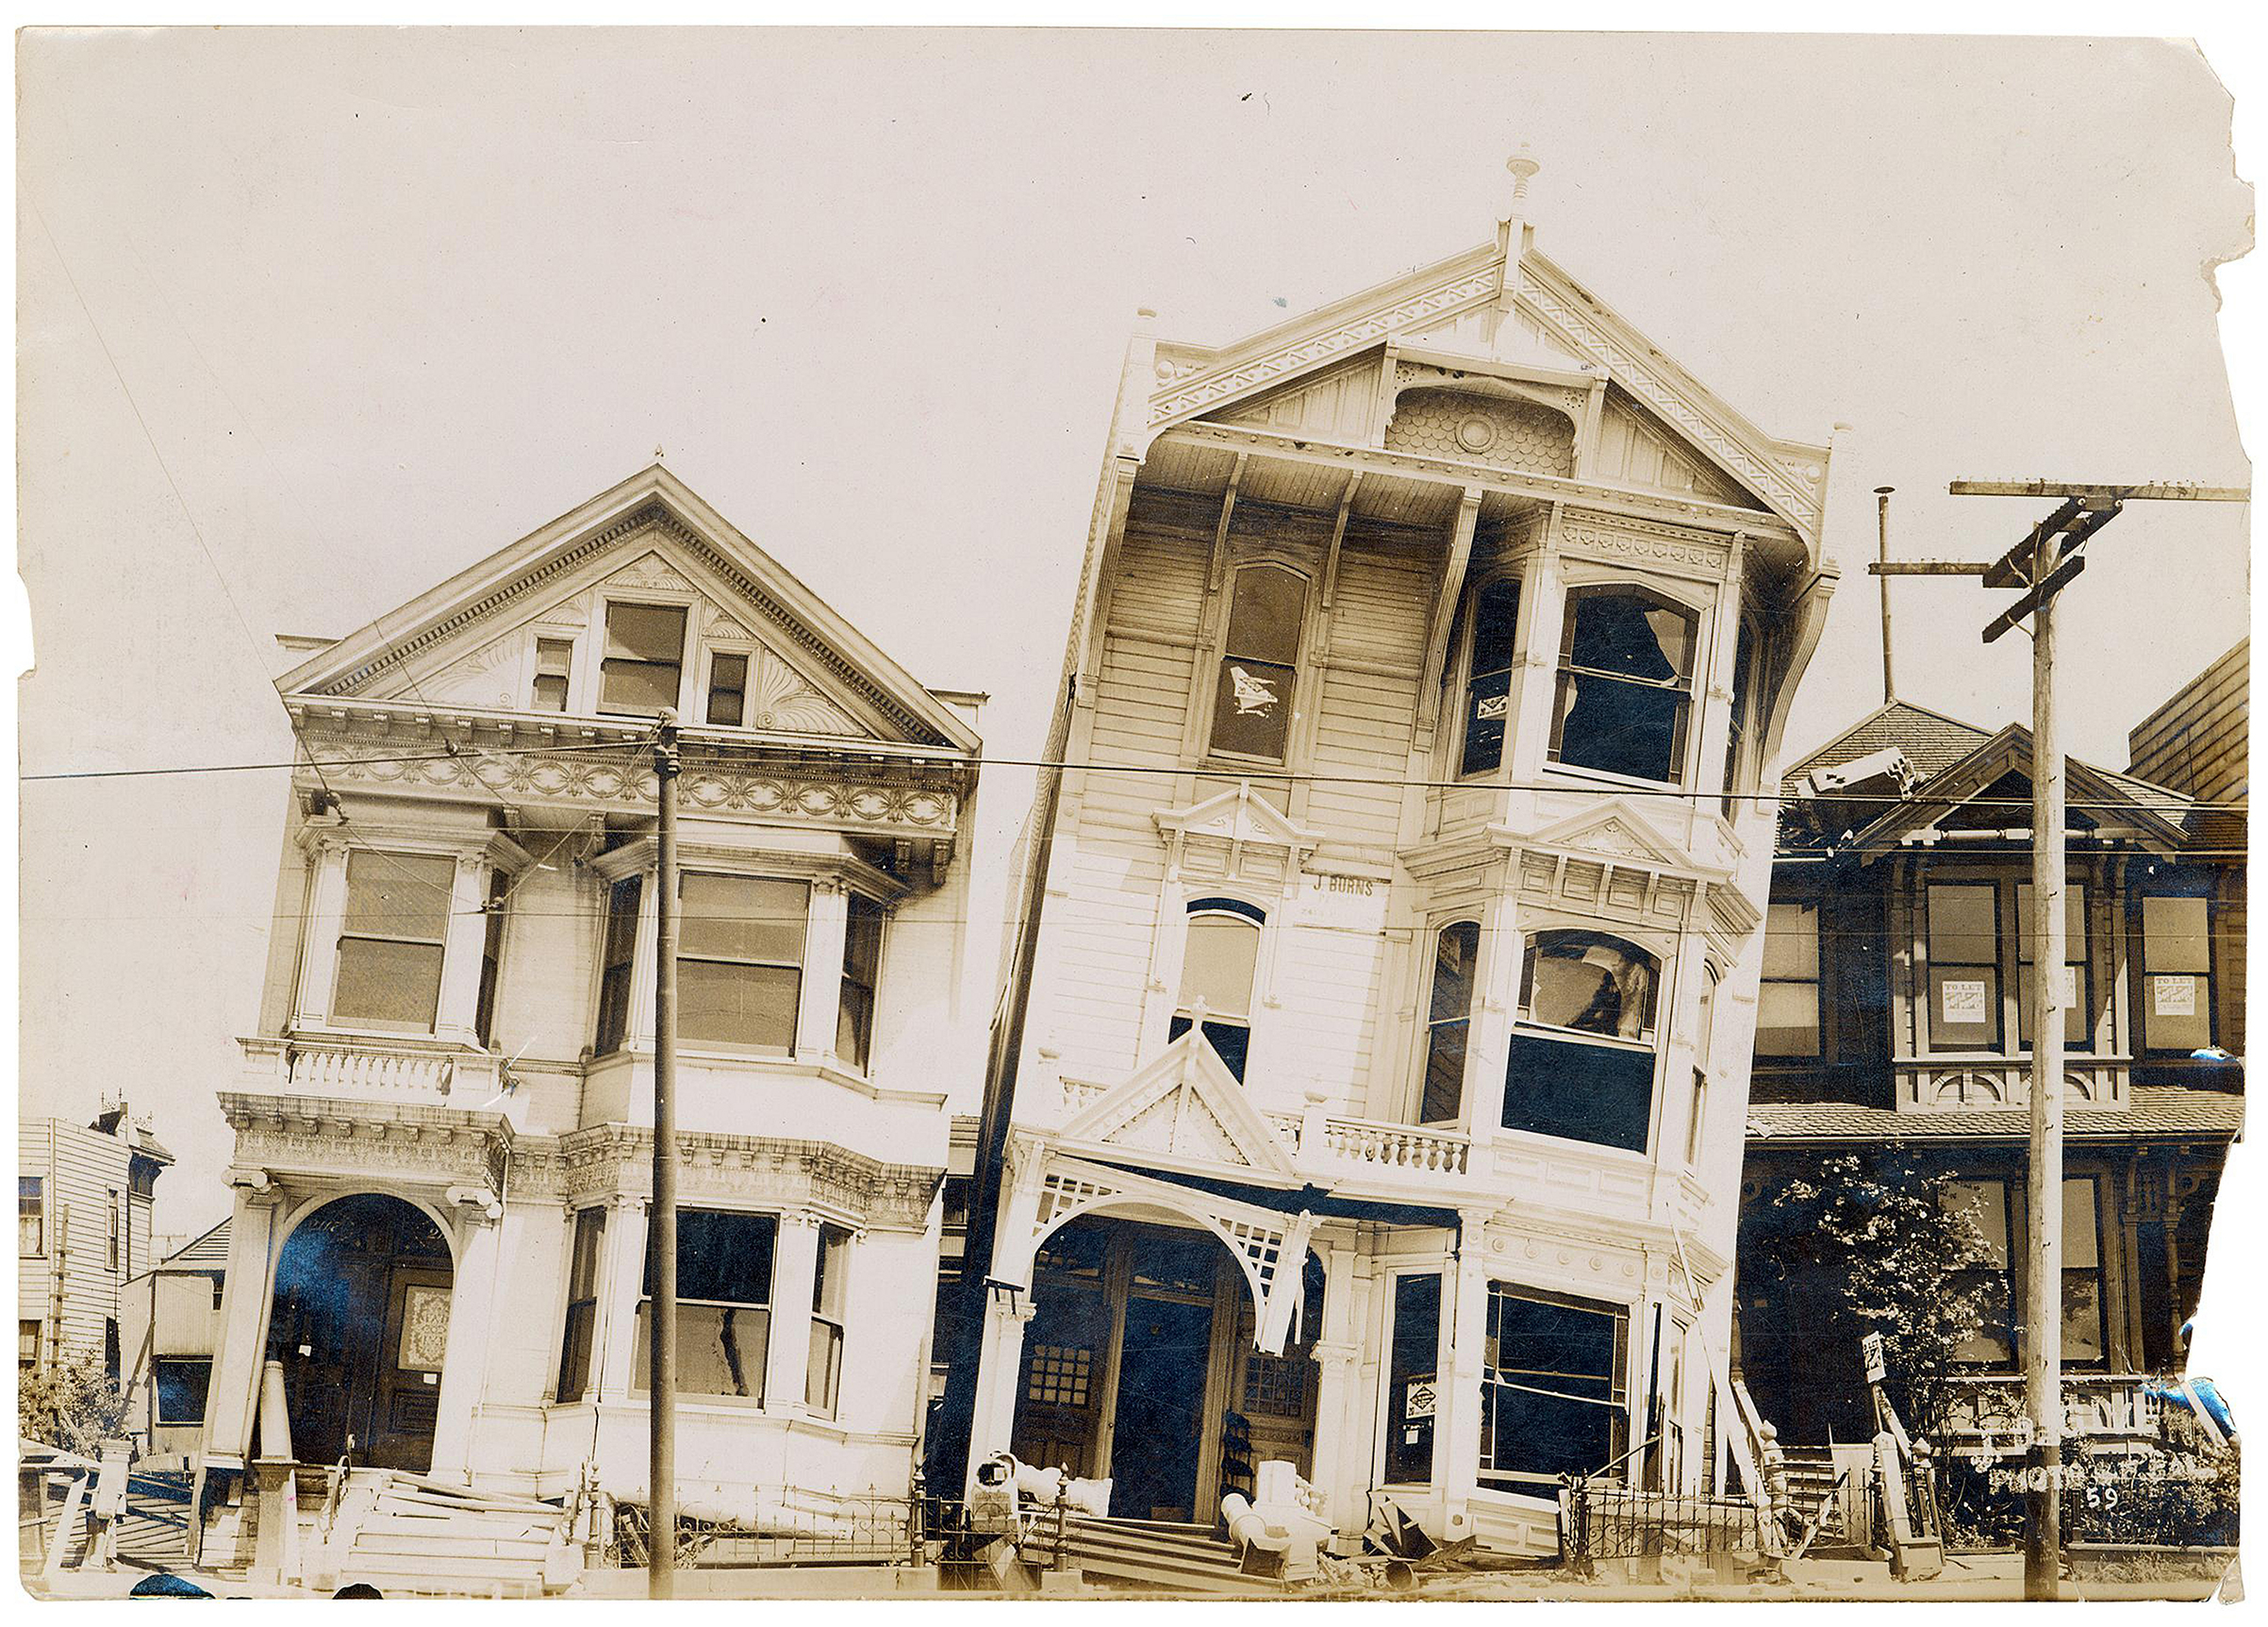 Houses in San Francisco, after an April 18, 1906, earthquake toppled them and killed thousands